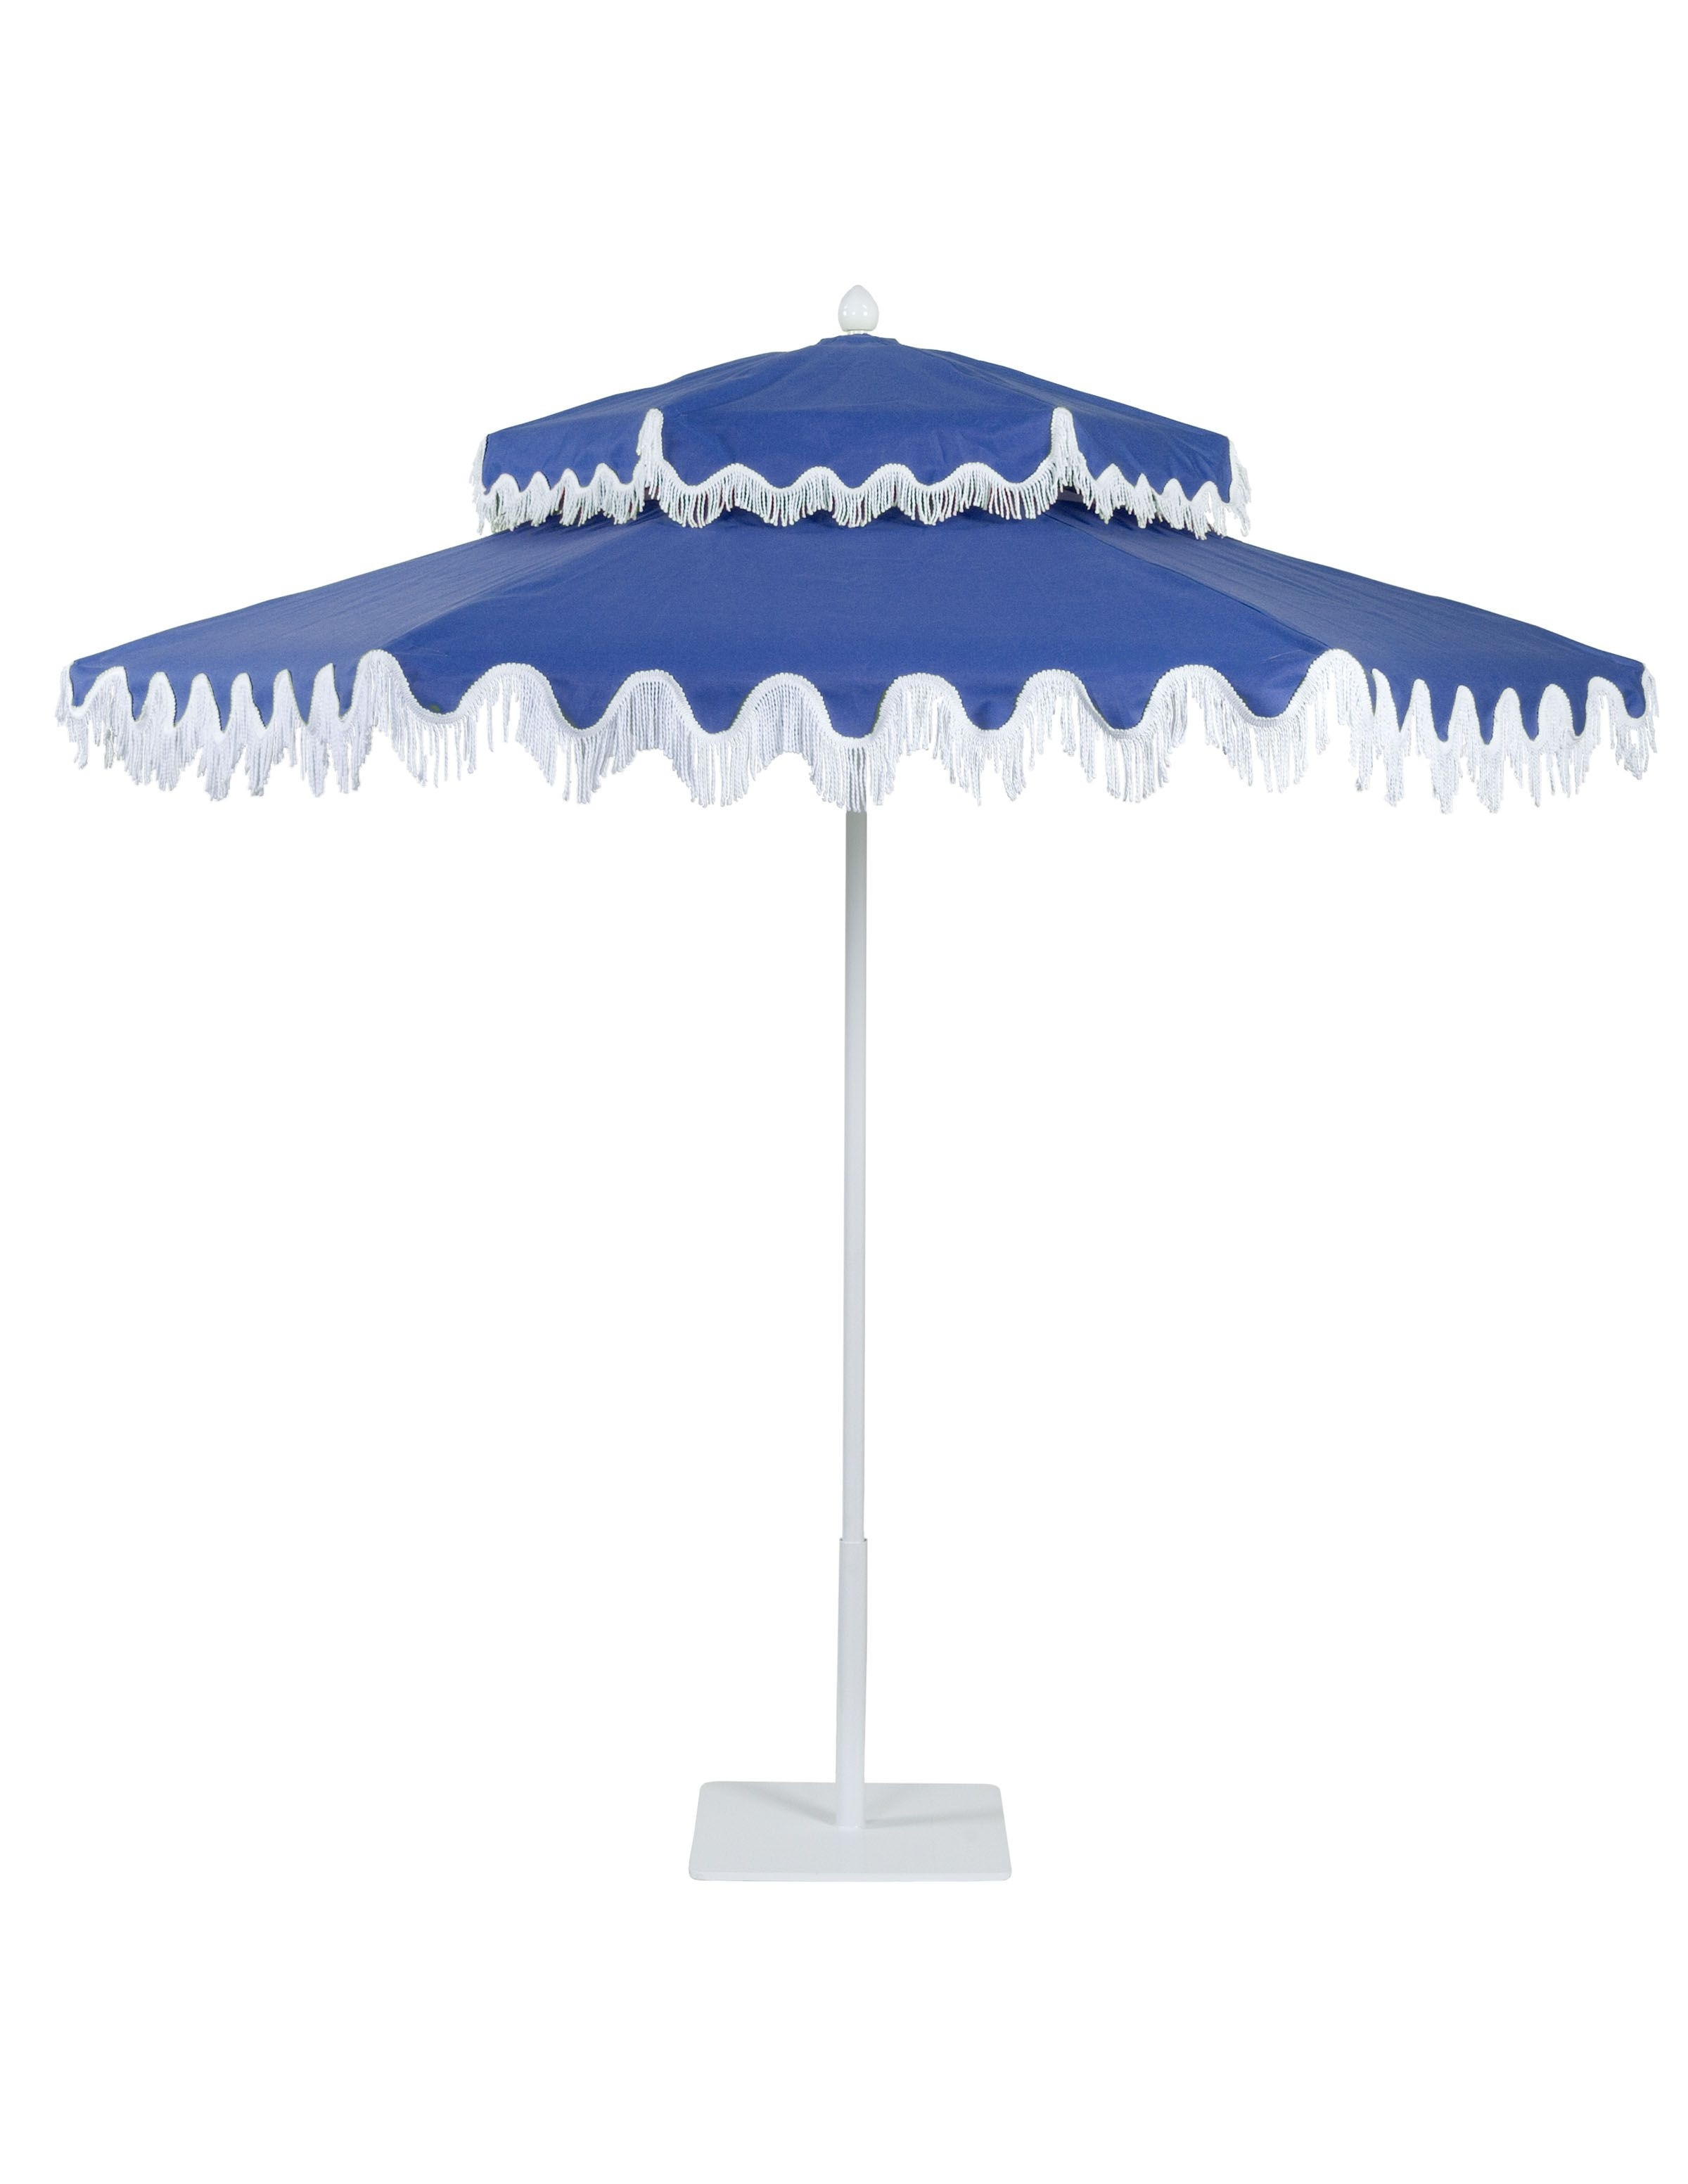 Patio Umbrellas With Fringe Pertaining To Popular 44 Patio Umbrella With Fringe Hm5K – Mcnamaralaw (View 10 of 20)